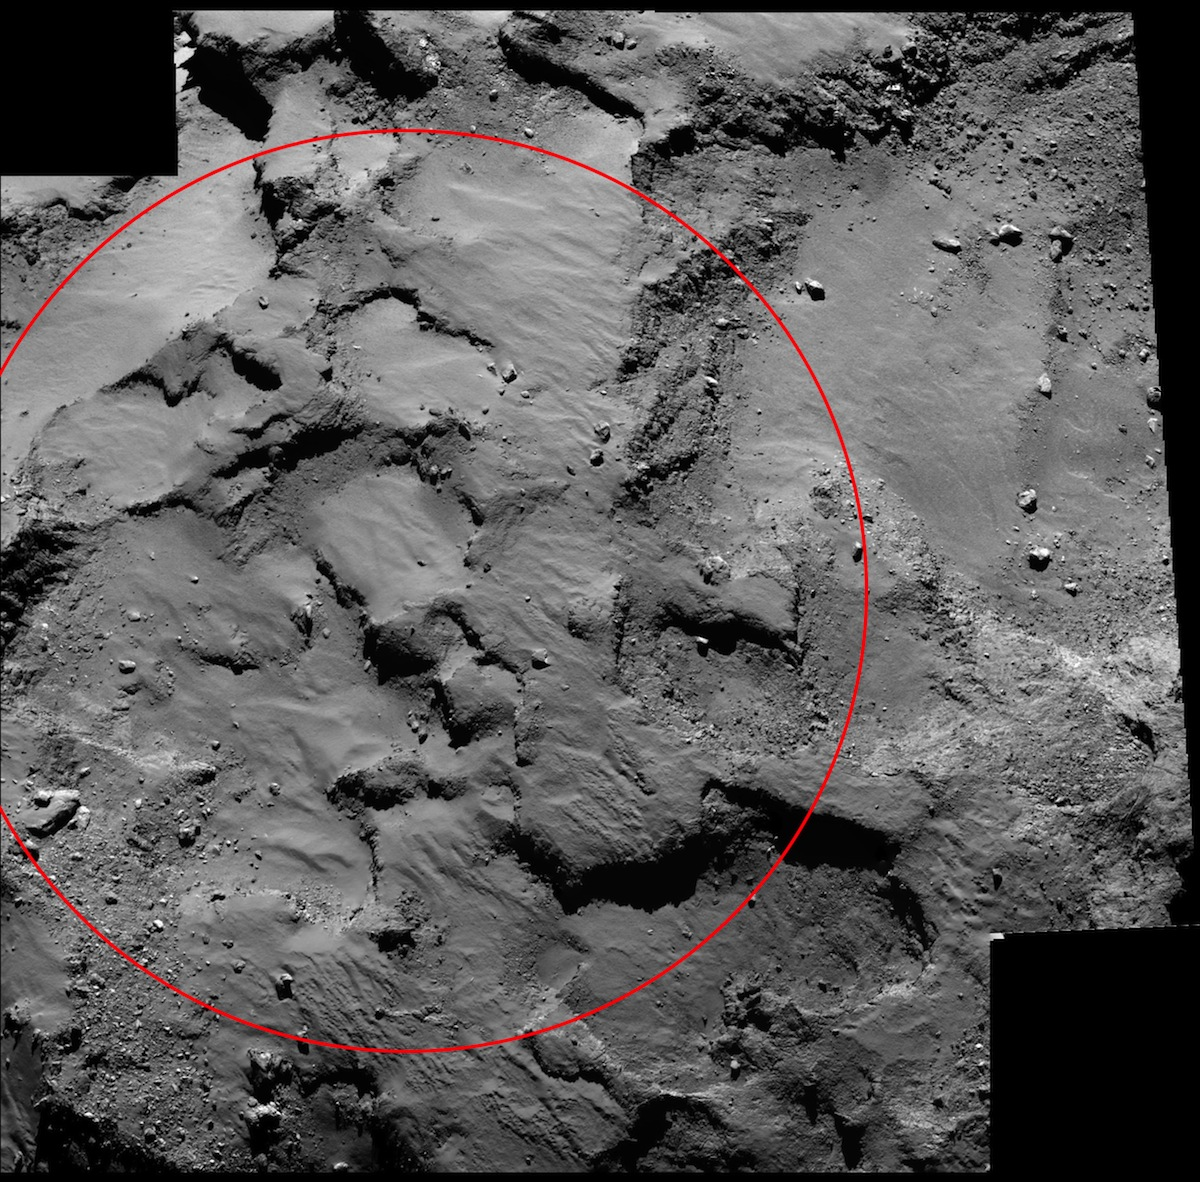 A close-up view of Philae's landing site on the comet. The red circle is about 500 meters, or 1,640 feet, across for scale. Credits: ESA/Rosetta/MPS for OSIRIS Team MPS/UPD/LAM/IAA/SSO/INTA/UPM/DASP/IDA